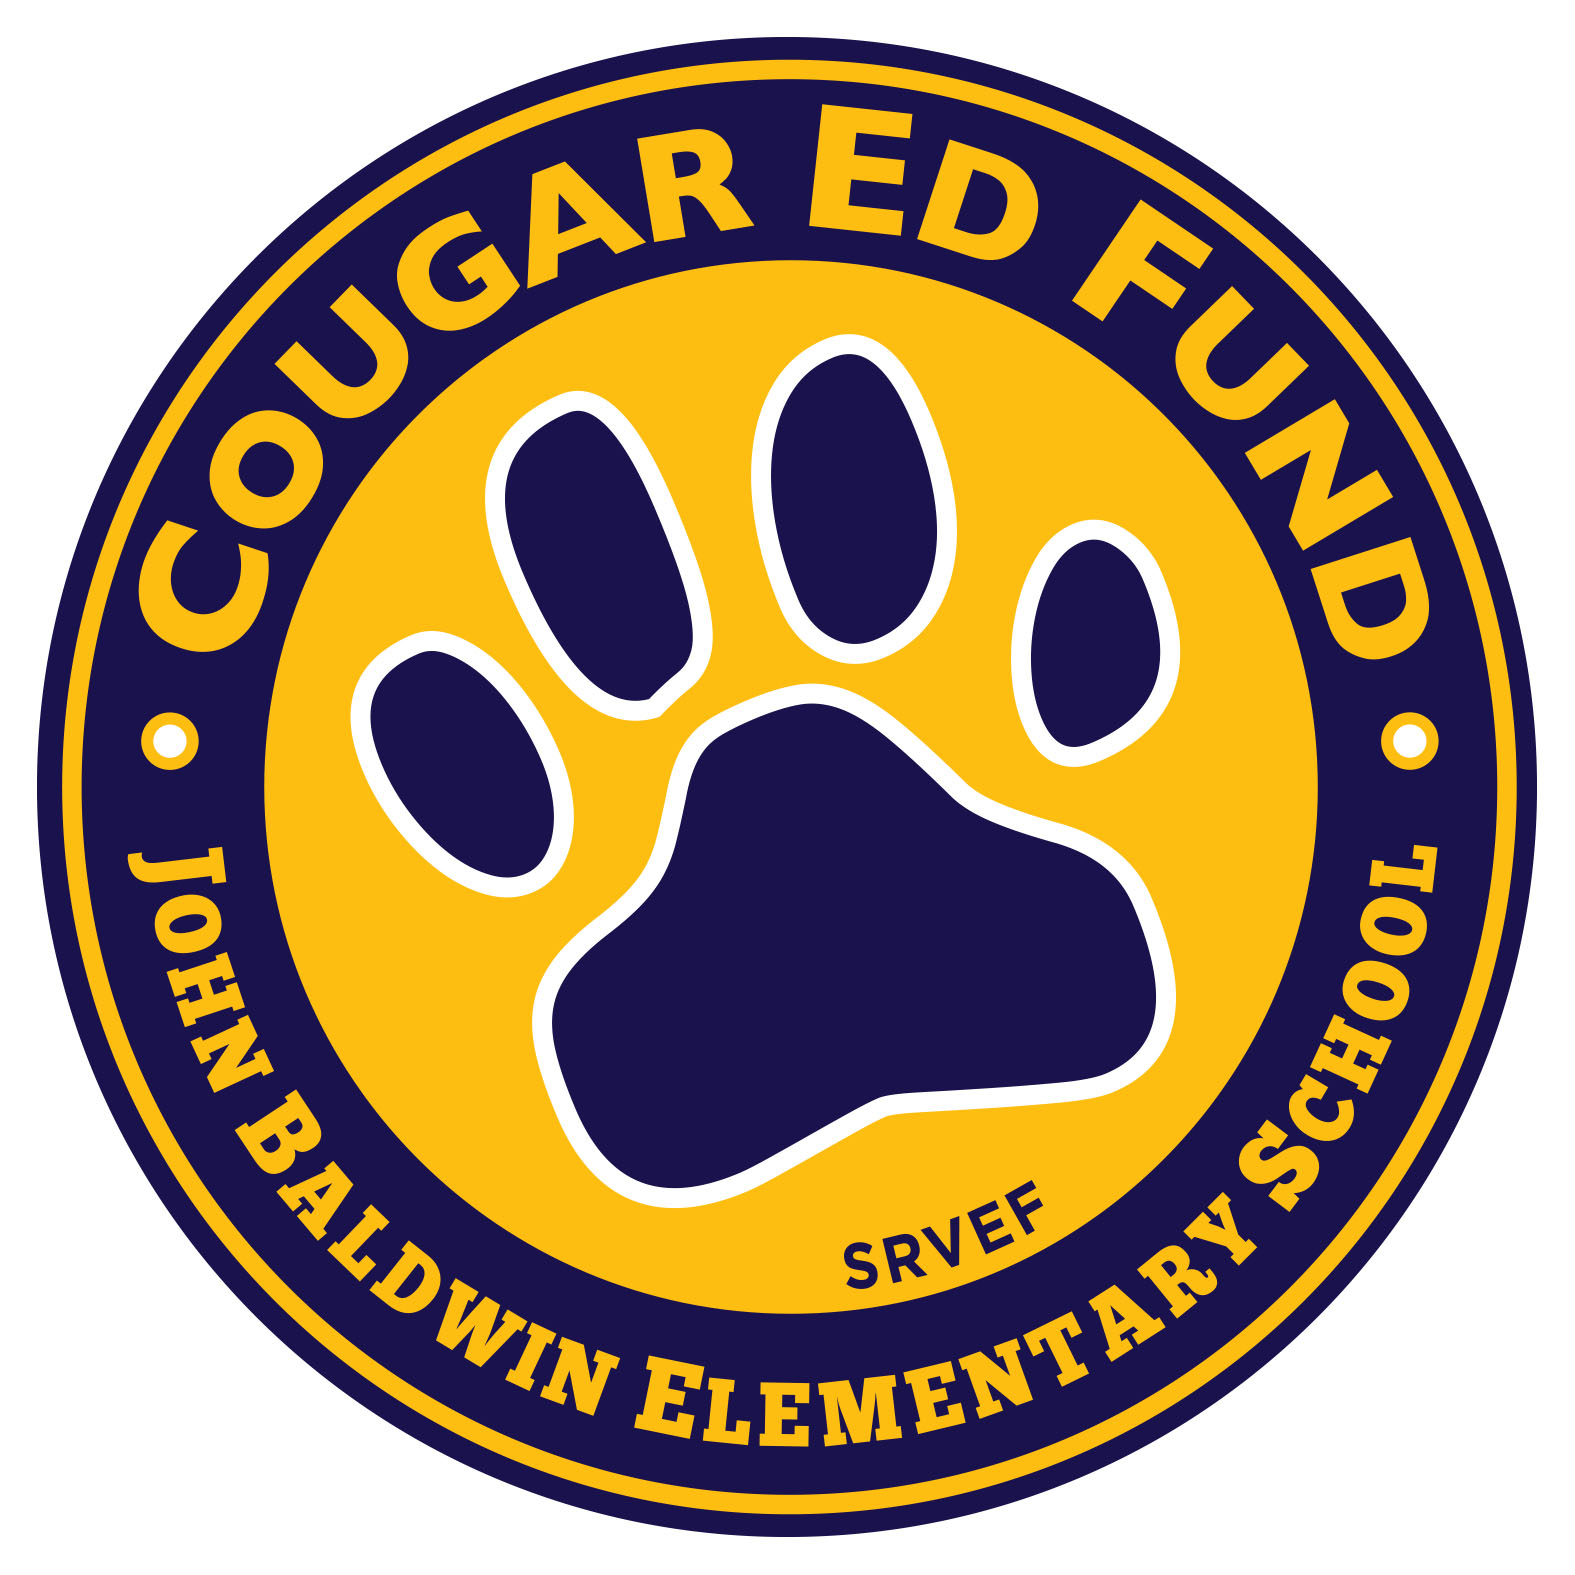 JB Cougar Ed Fund